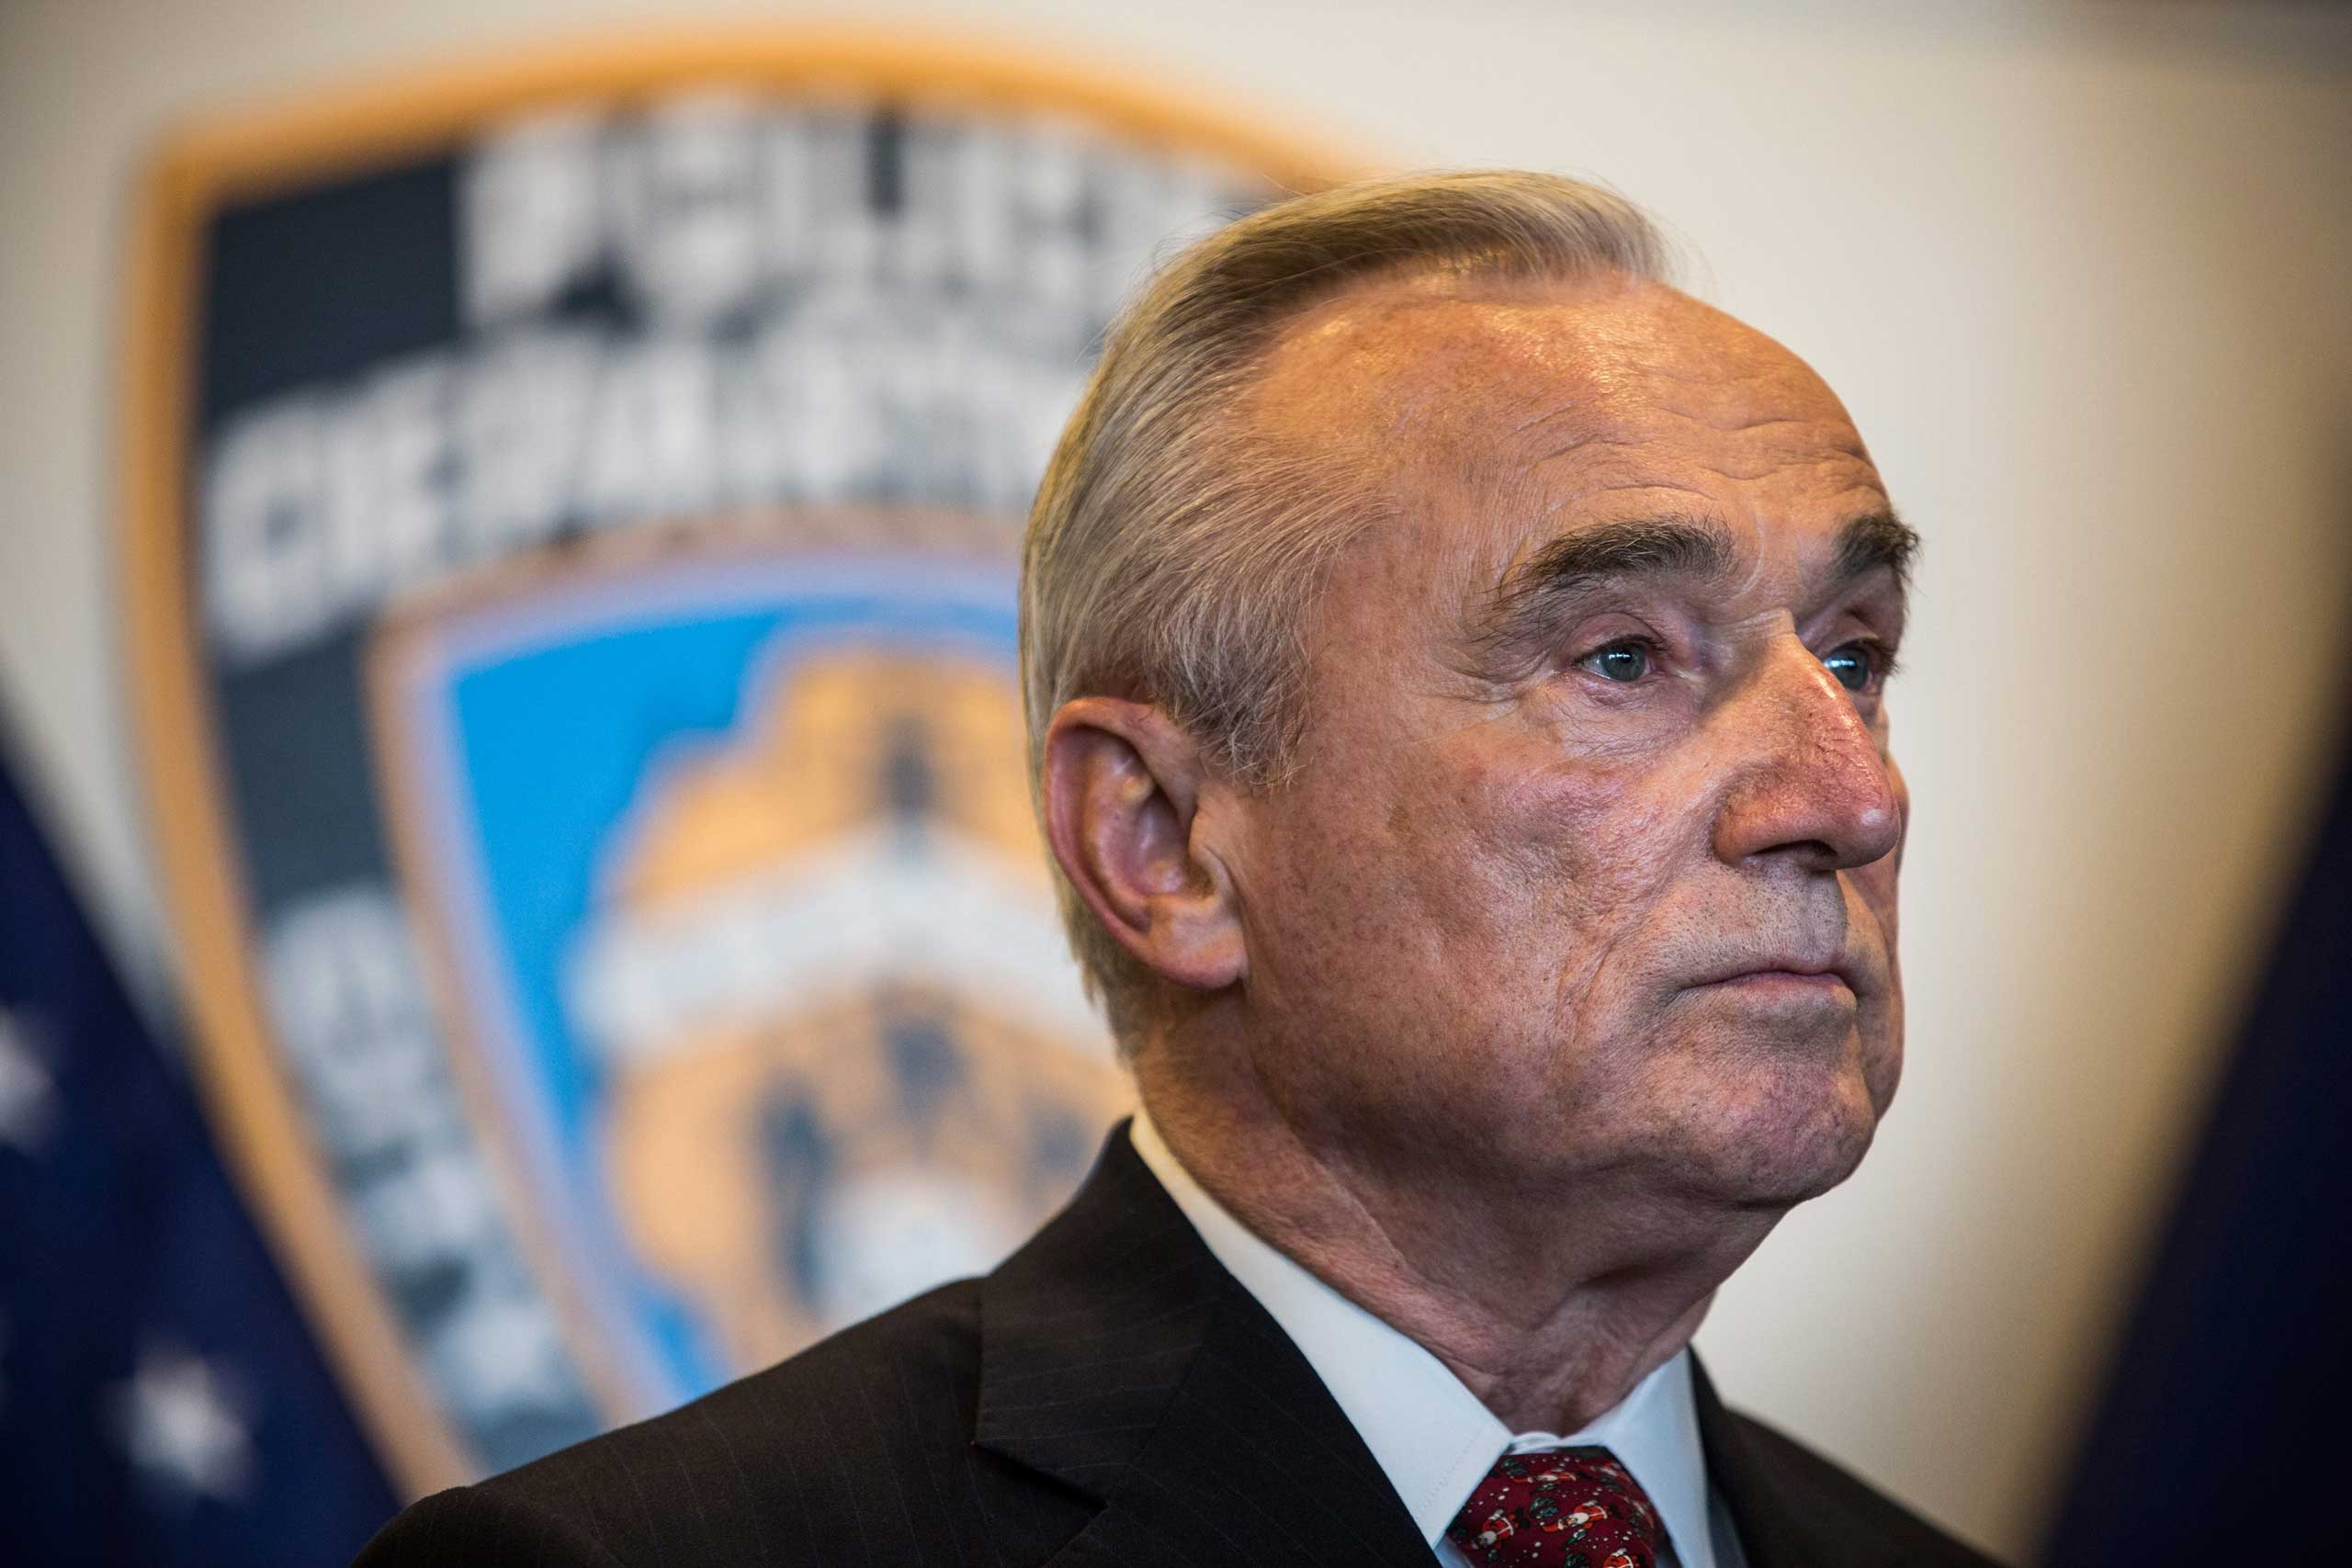 New York Police Department (NYPD) Commissioner Bill Bratton attends a press conference on Dec. 4, 2014 in the College Point neighborhood of the Queens borough of in New York.